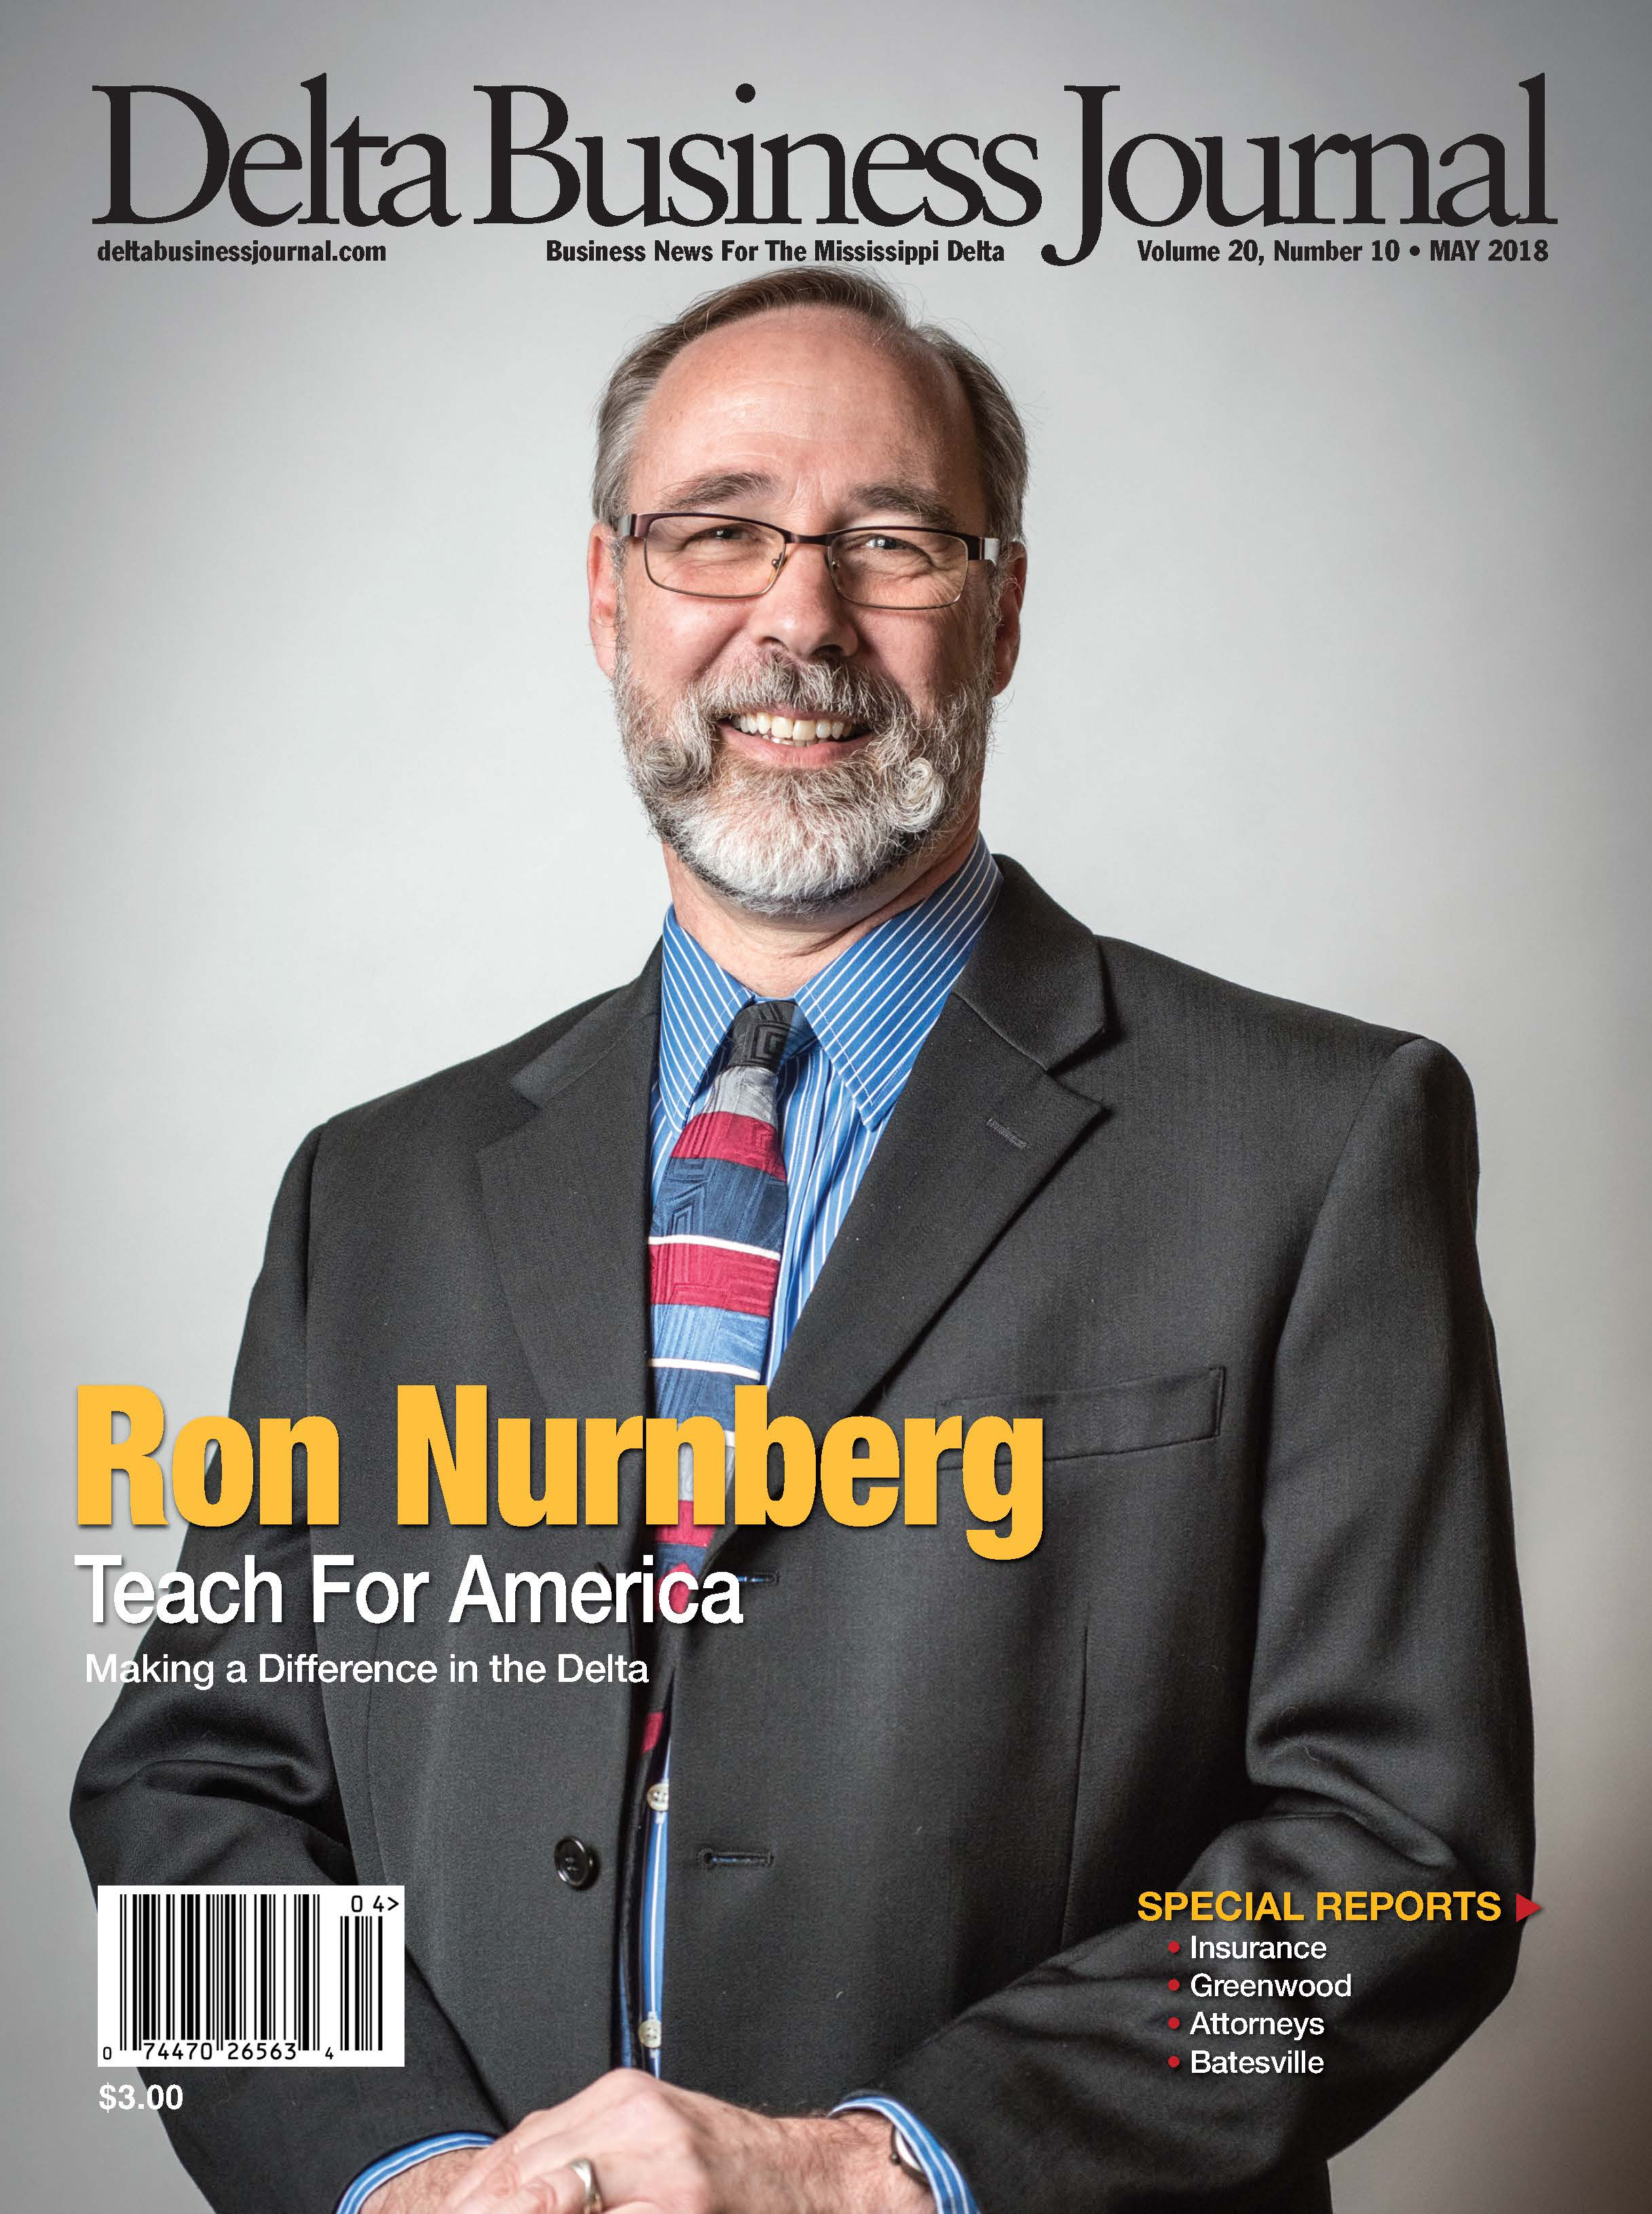 Ron Nurnberg Teach for America